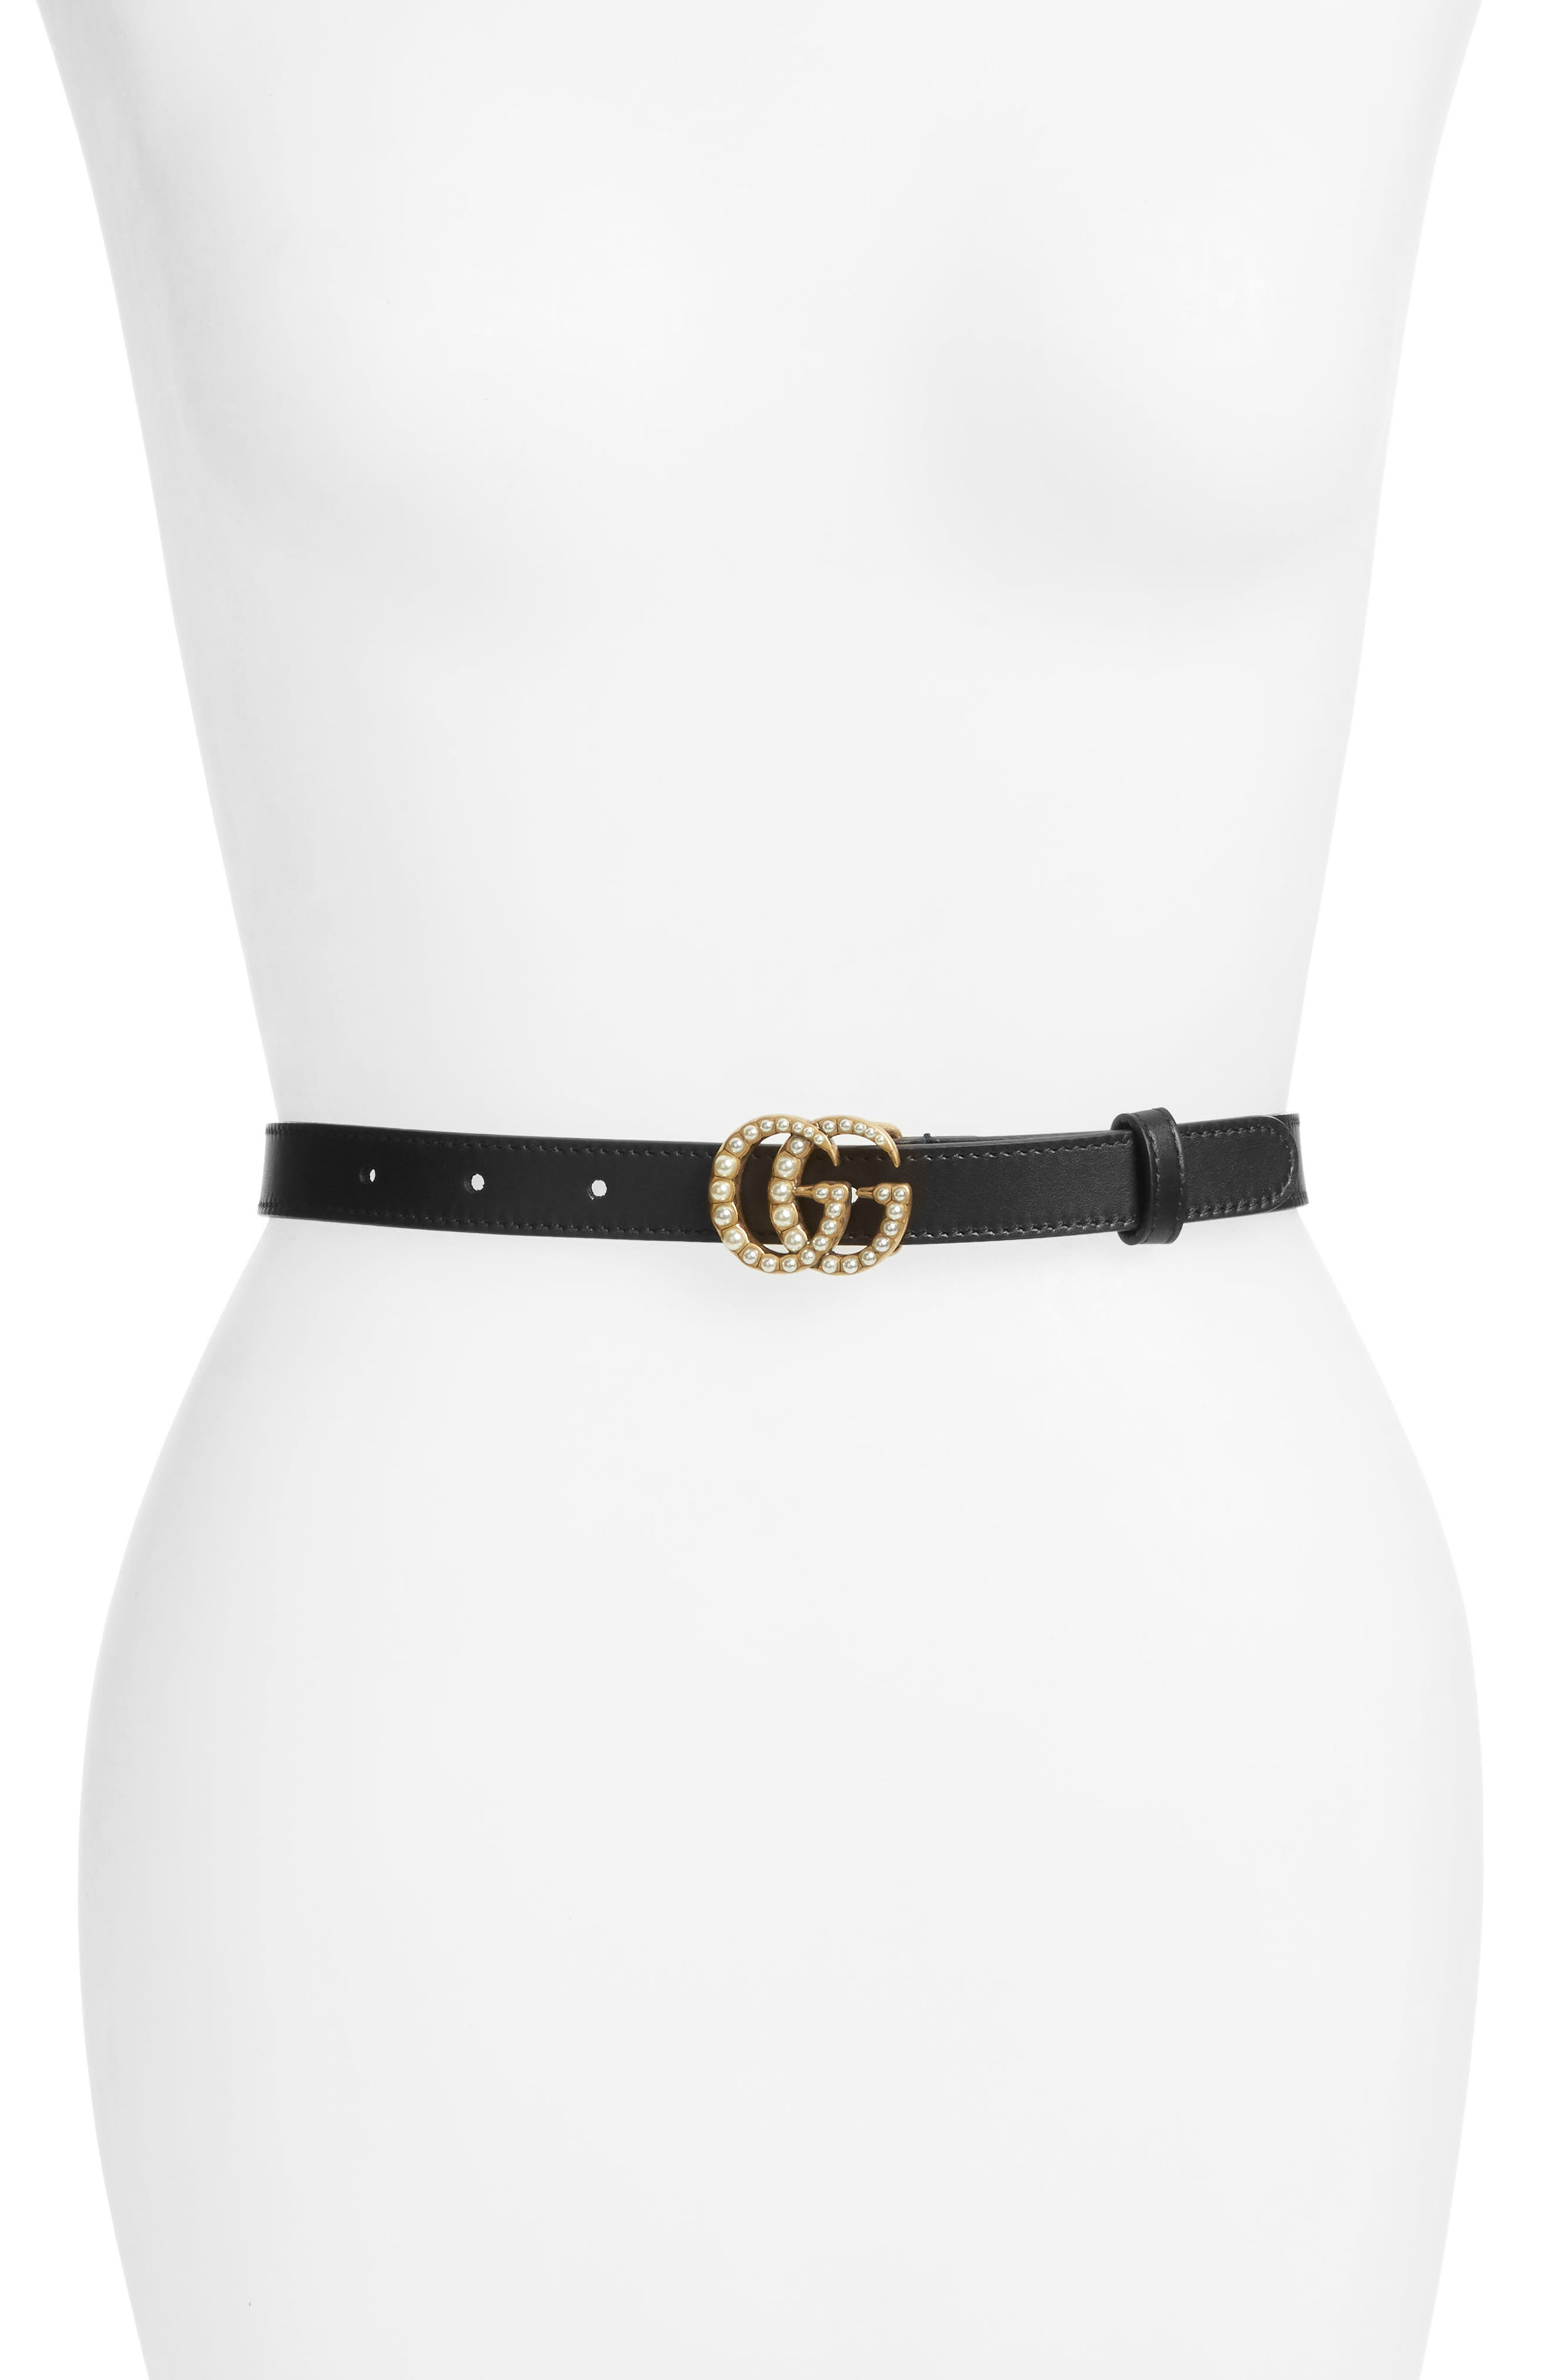 GUCCI,                             Calfskin Leather Skinny Belt,                             Main thumbnail 1, color,                             NERO/ CREAM